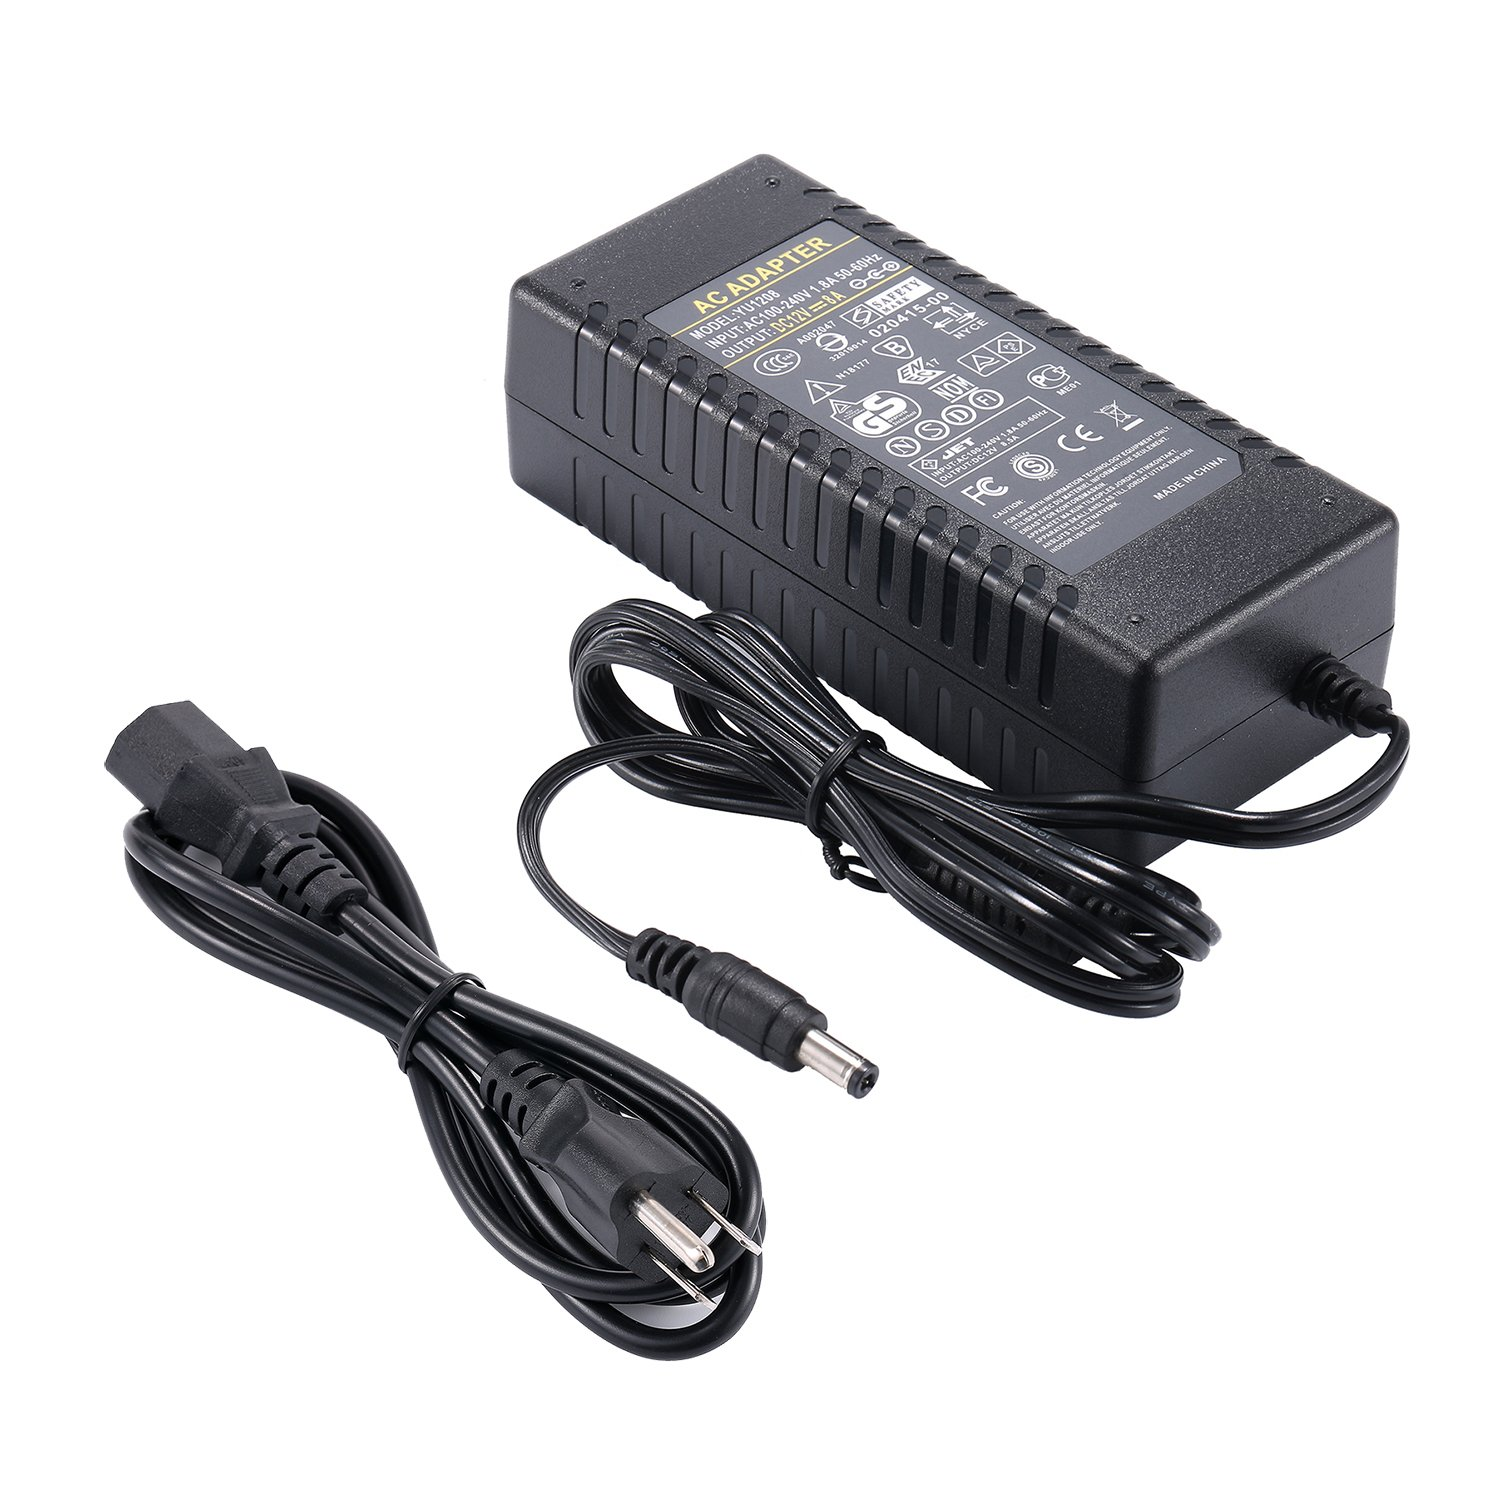 COOLM Power Charger AC to DC Adapter Converter 12V 8A 96W DC Power Supply 5.5x2.5mm DC Output Jack HUAPU YU1208